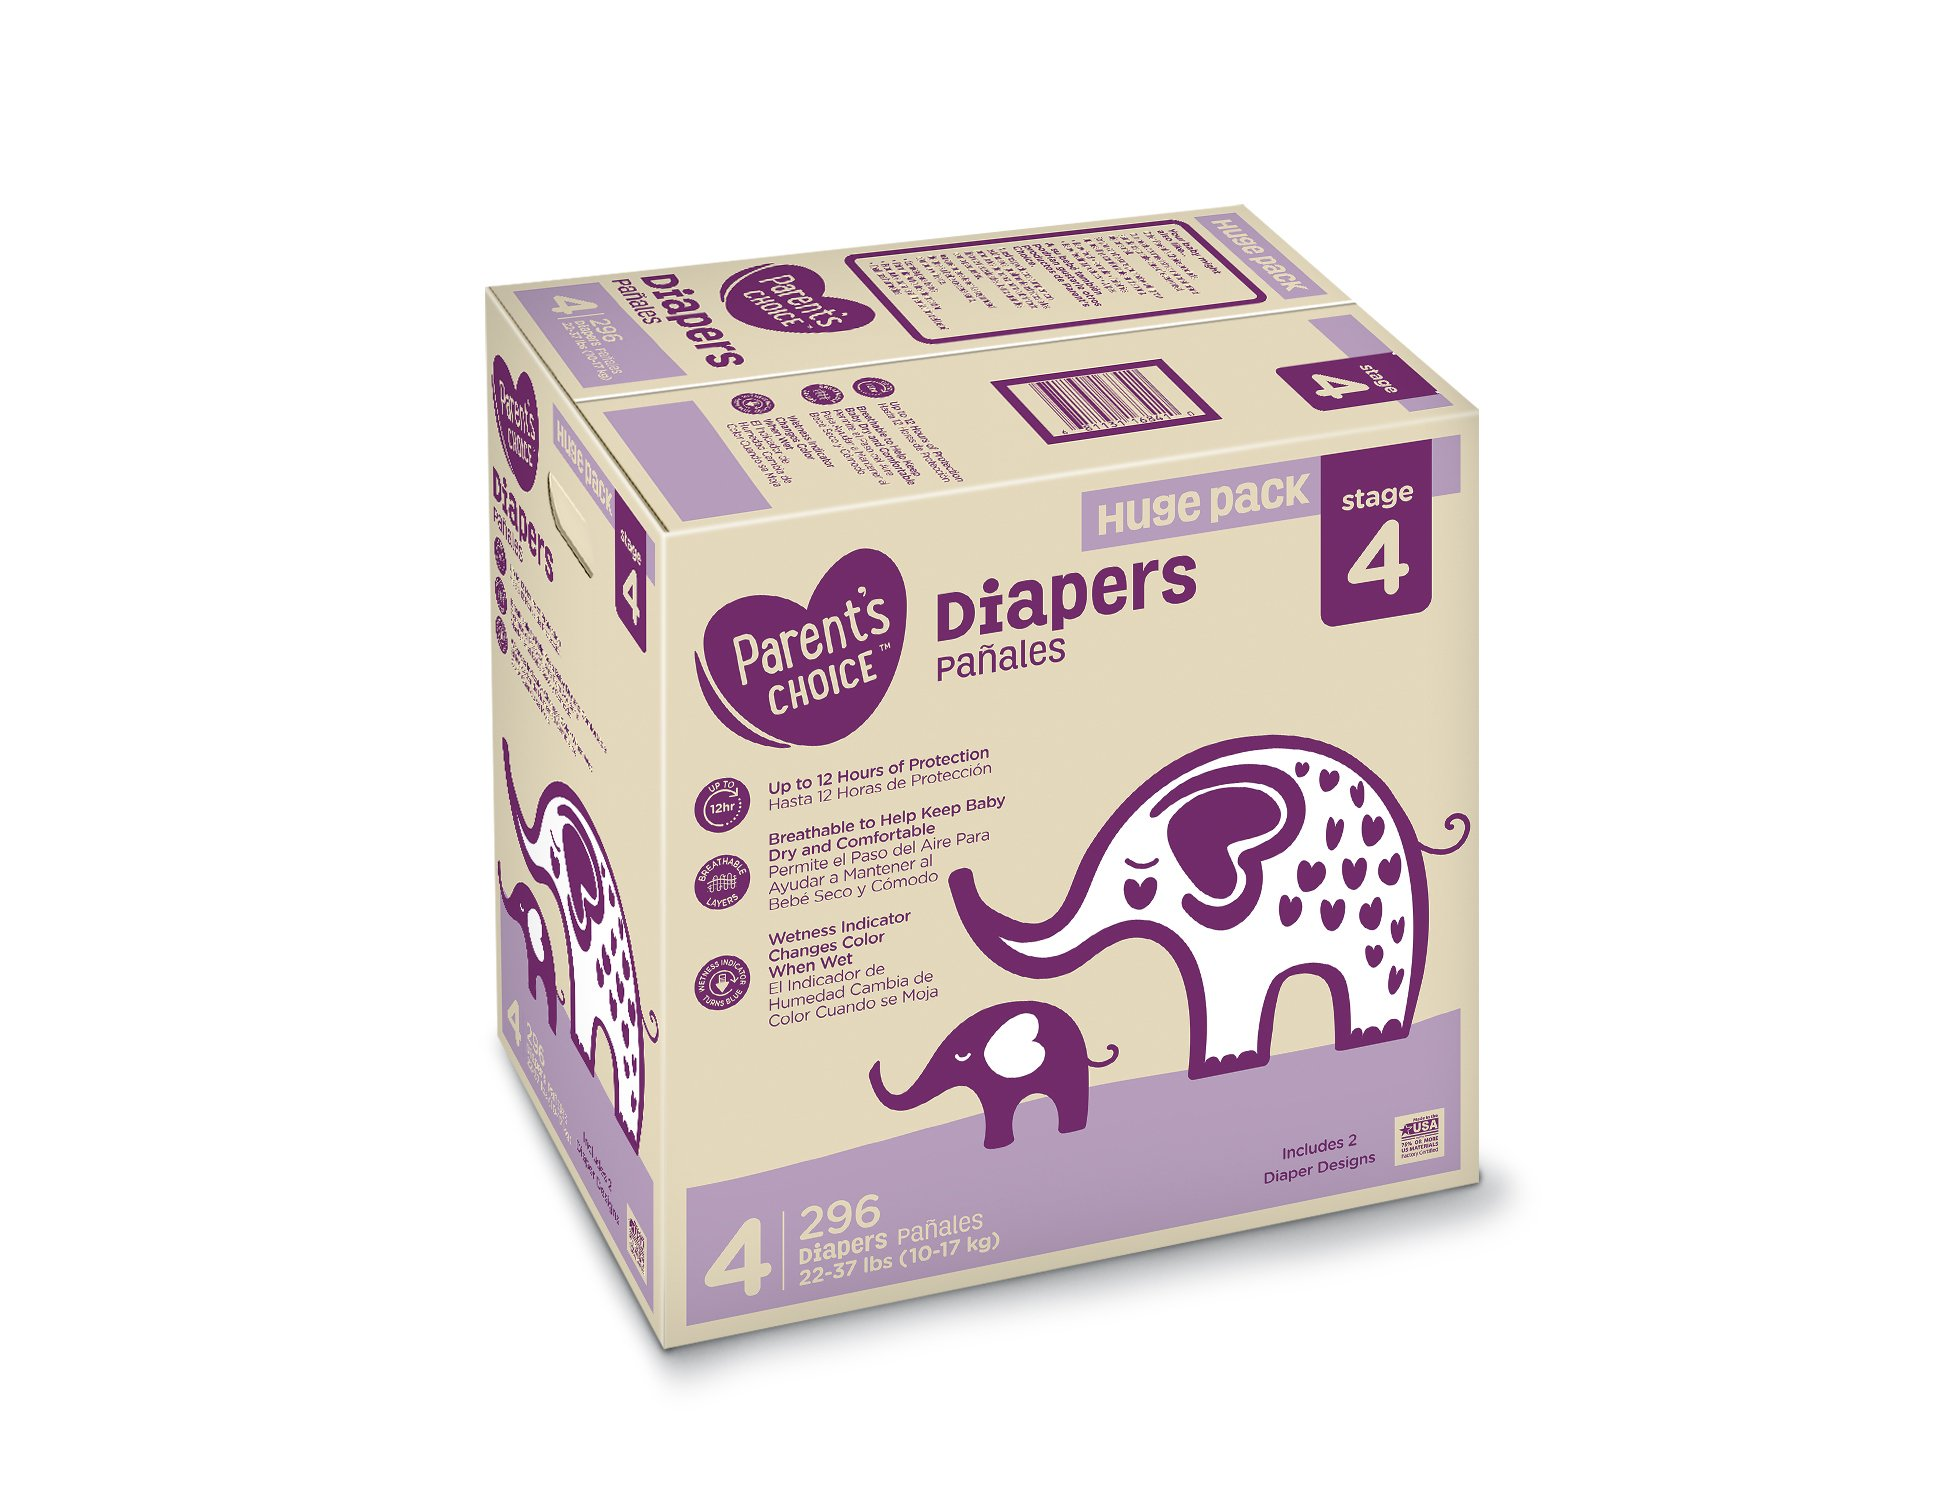 Parent's Choice Diapers, Size 4, 296 Diapers